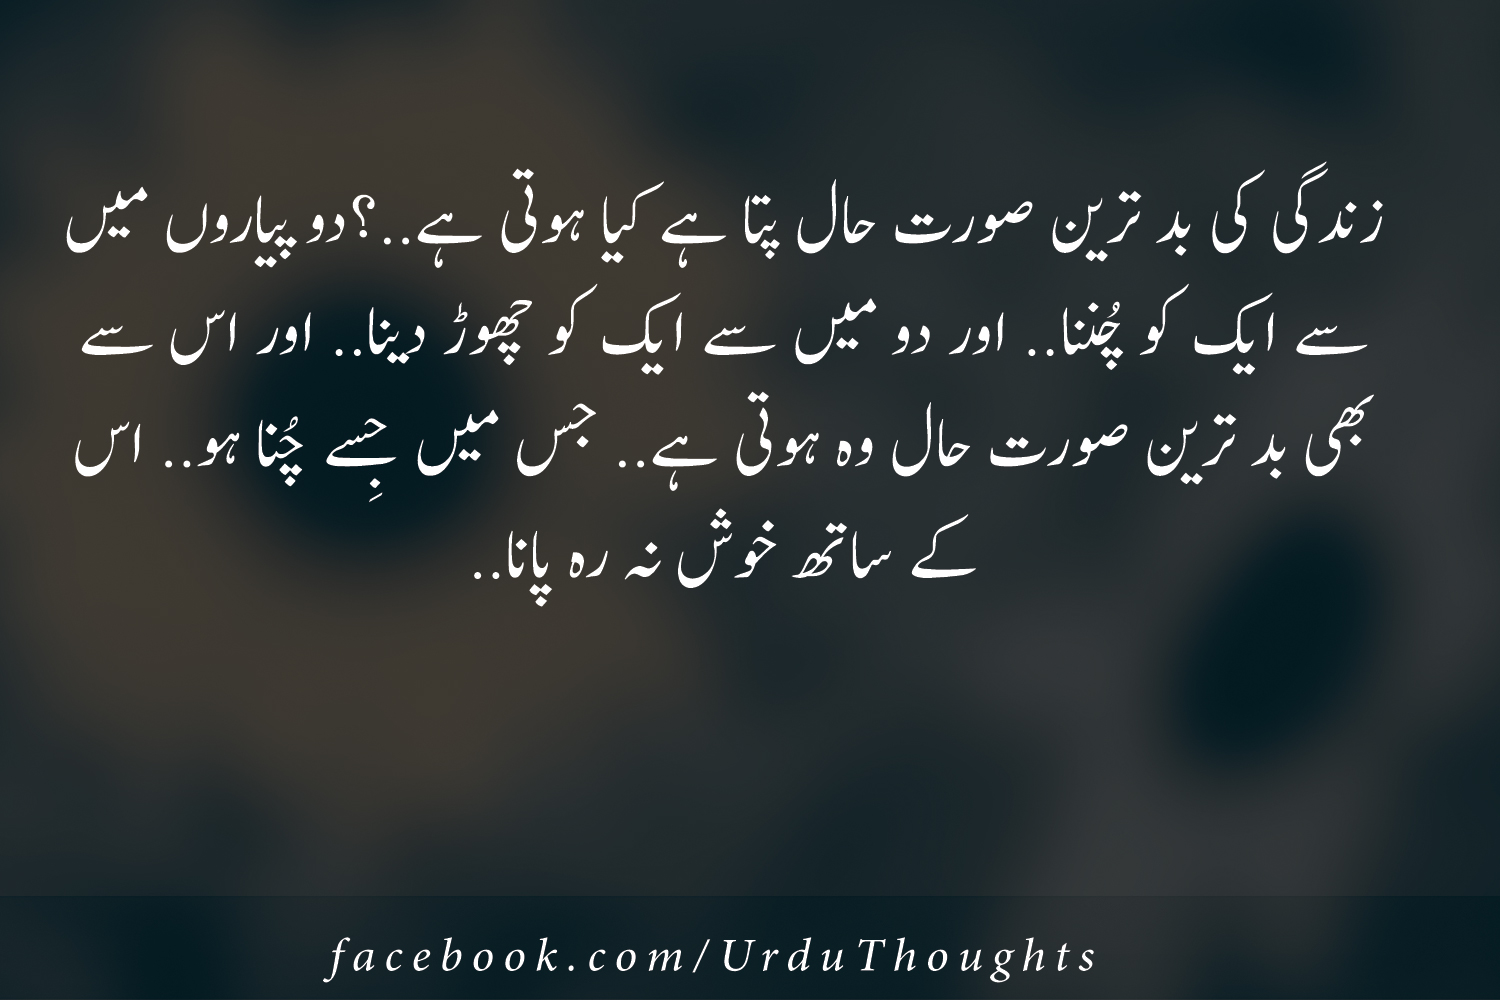 Best Famous Success Quotes in Urdu Images - Urdu Thoughts